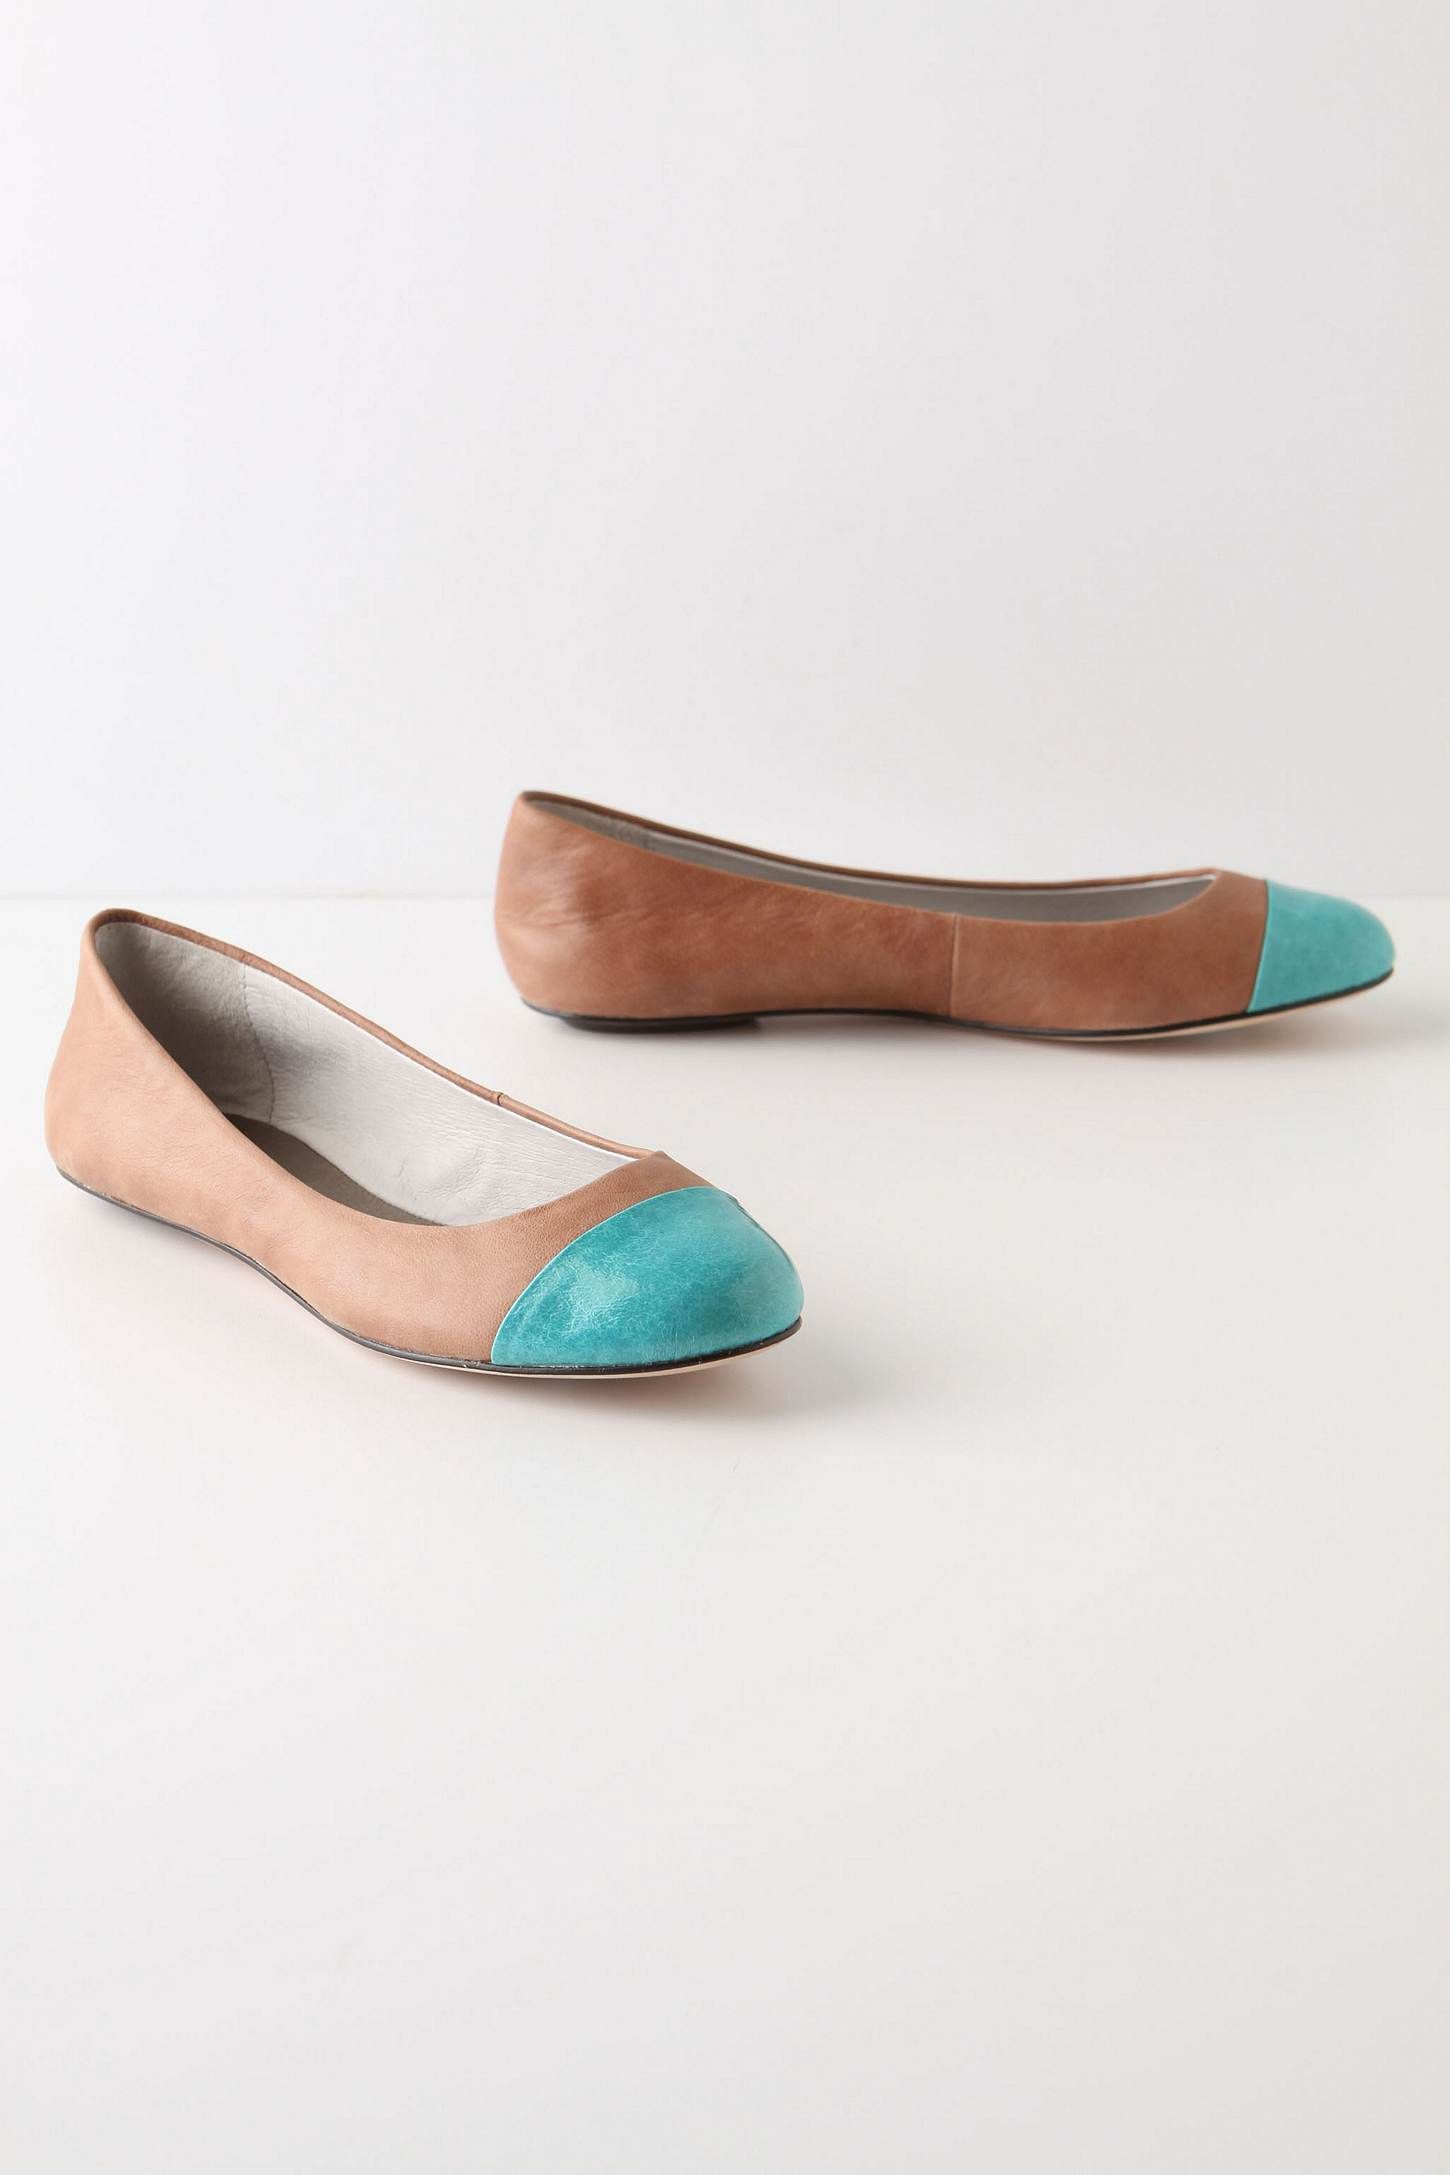 Neutral skimmers with a pop of turquoise - love!